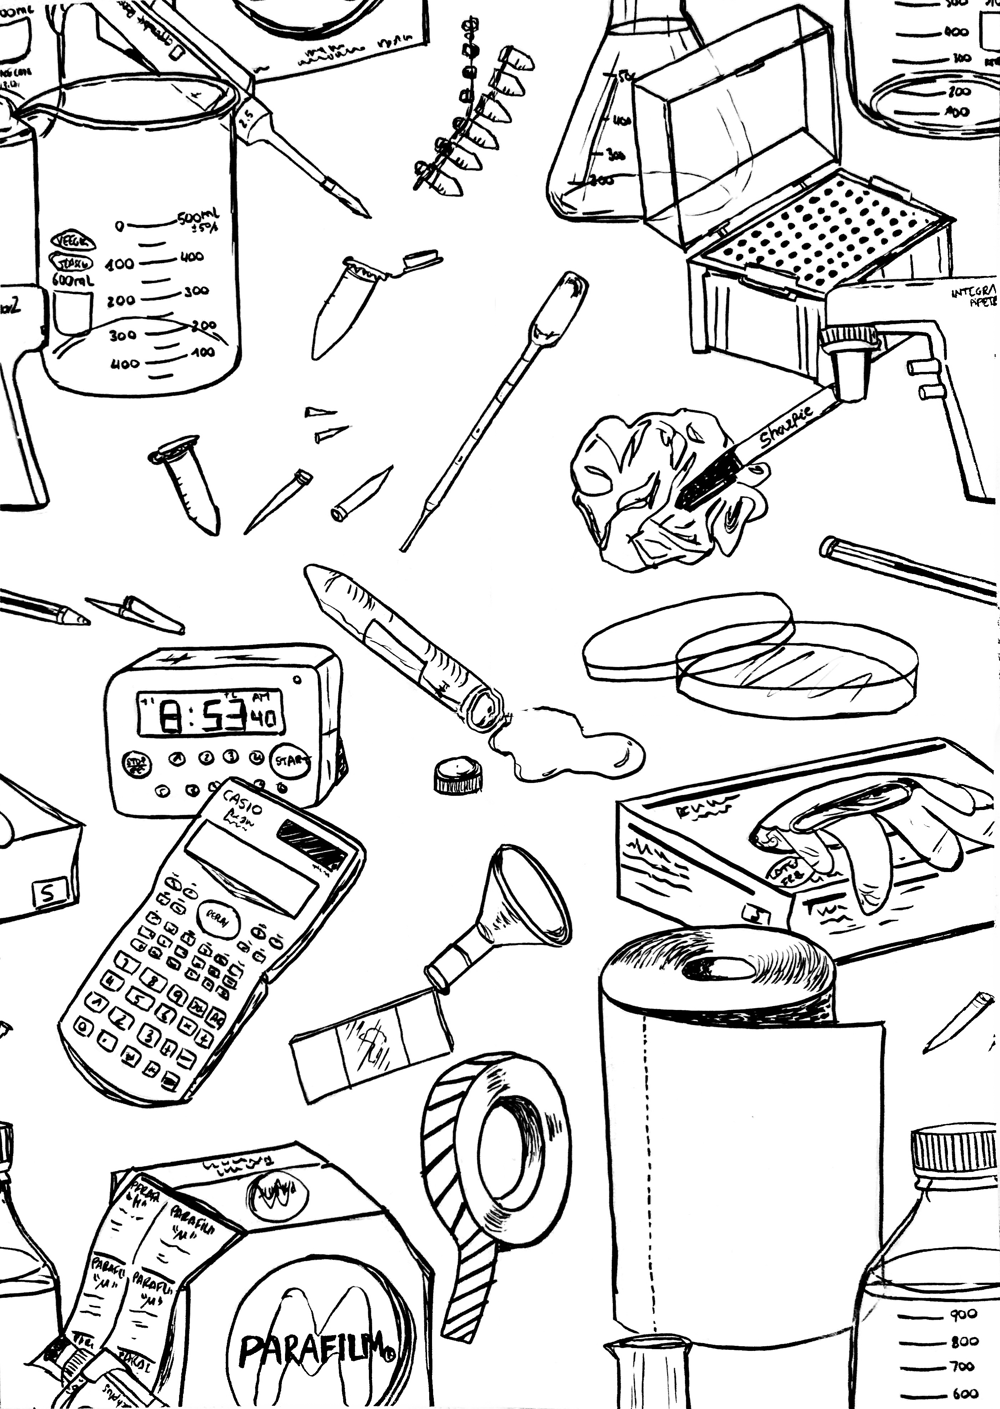 Illustrating Patterns: Creating Hand-Drawn Wallpaper - image 2 - student project